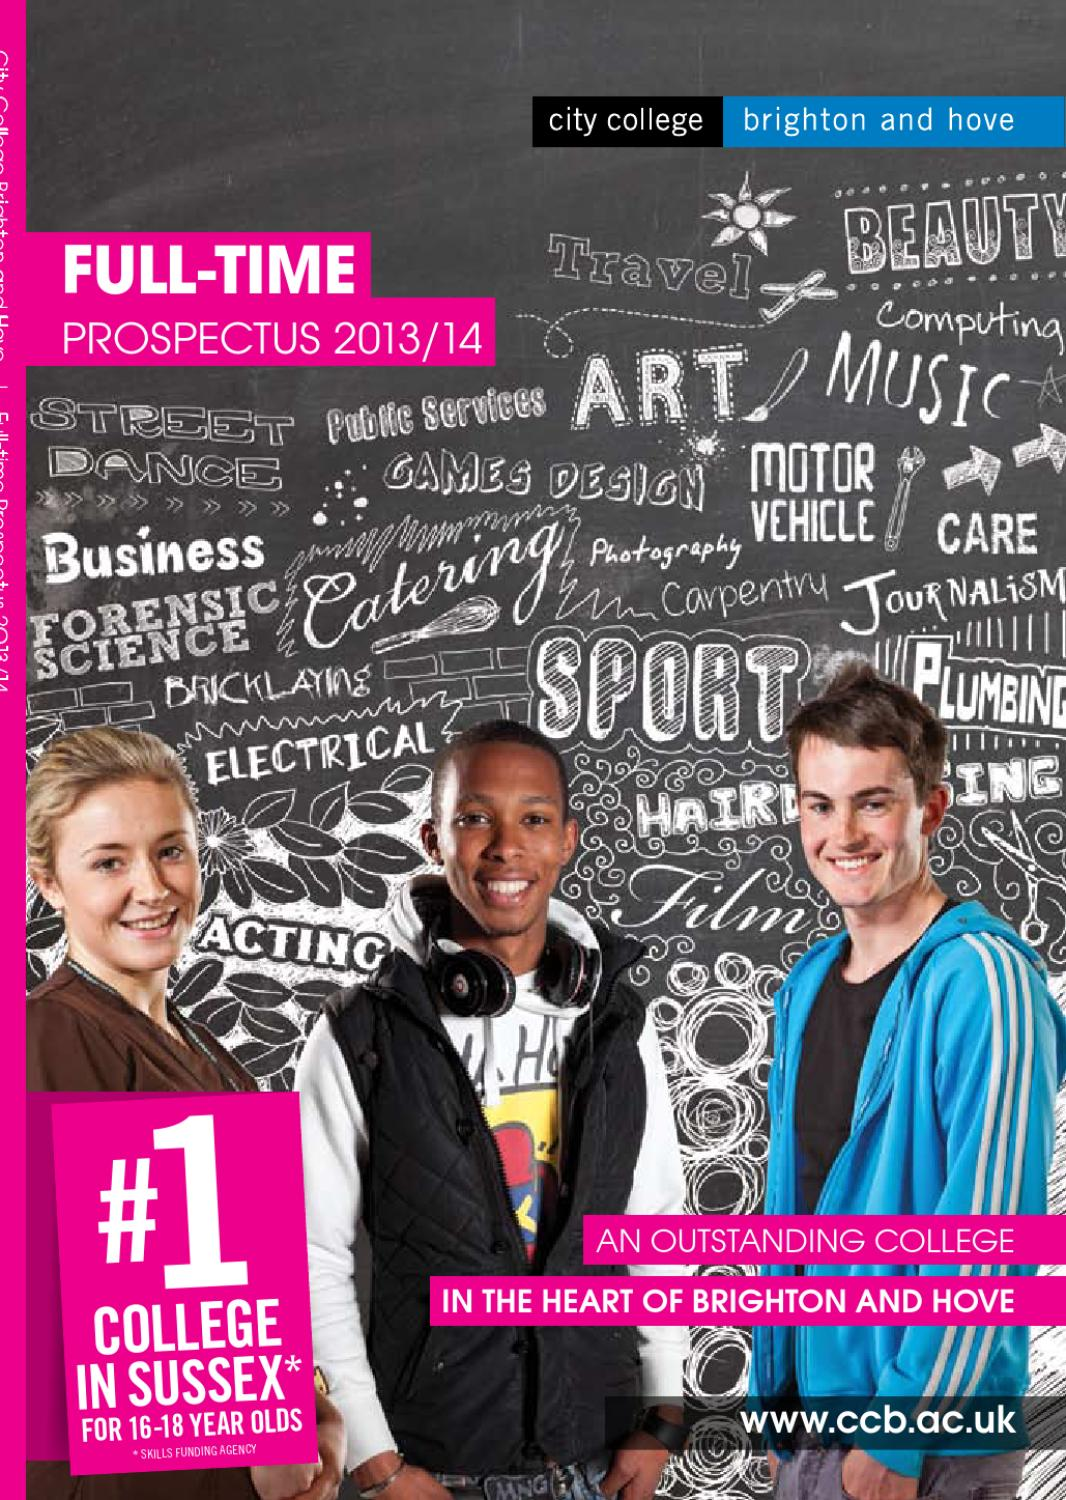 Full-Time Prospectus 2013/14 by City College Brighton and Hove - issuu